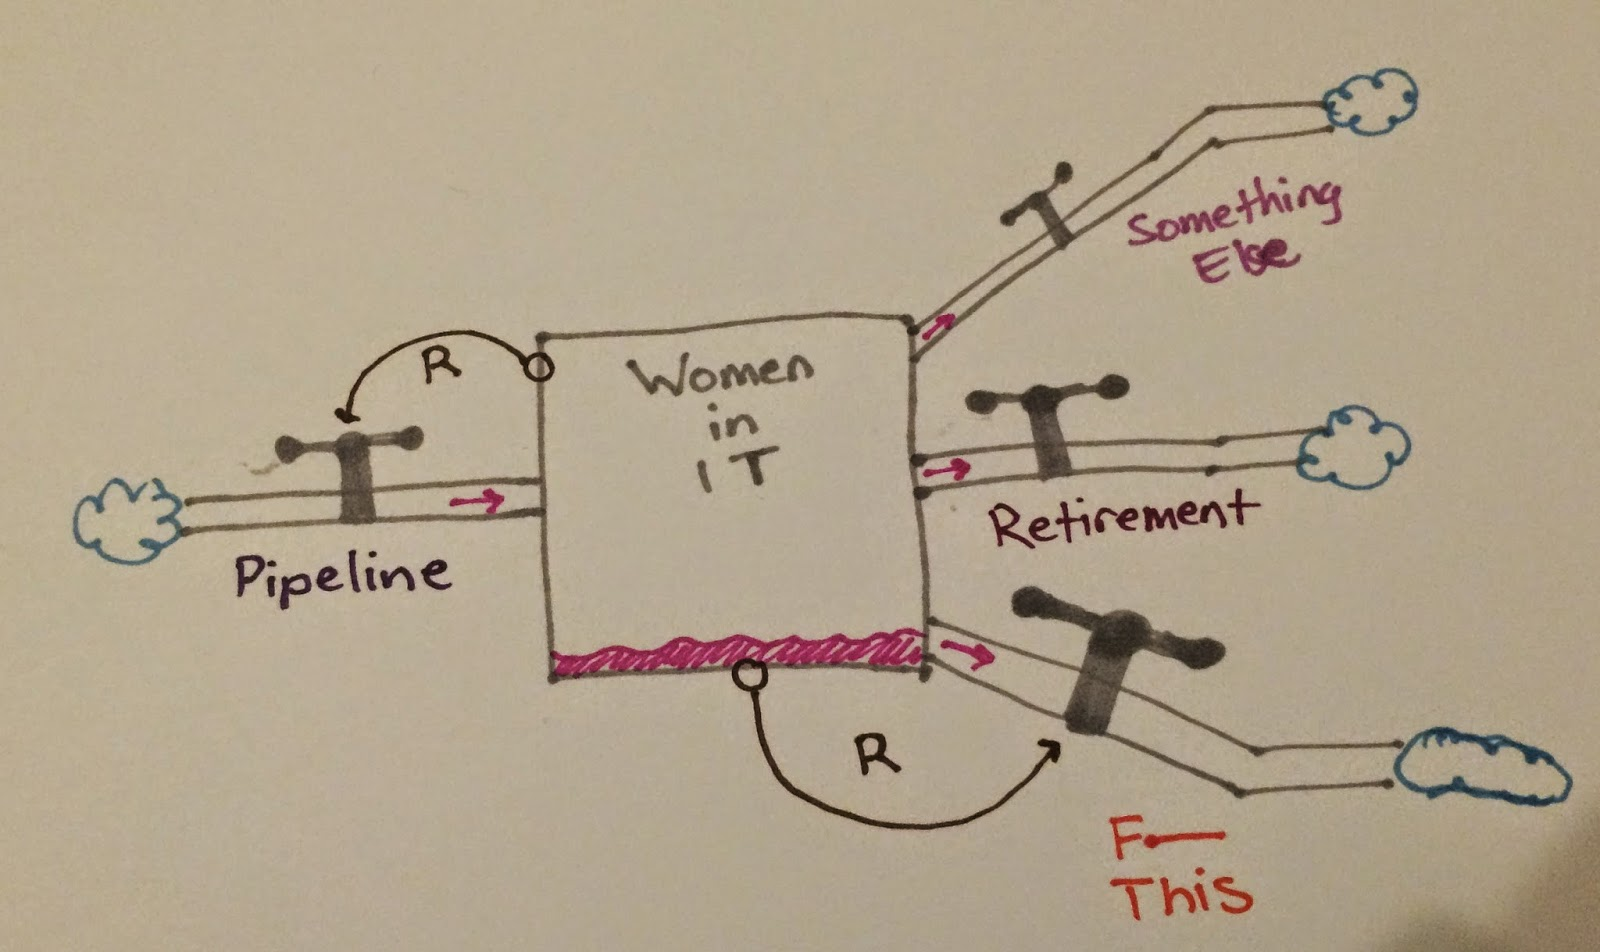 same picture, with additional arrow indicating that the quantity of women in IT affects the rate of the F This outflow. Marked with R.